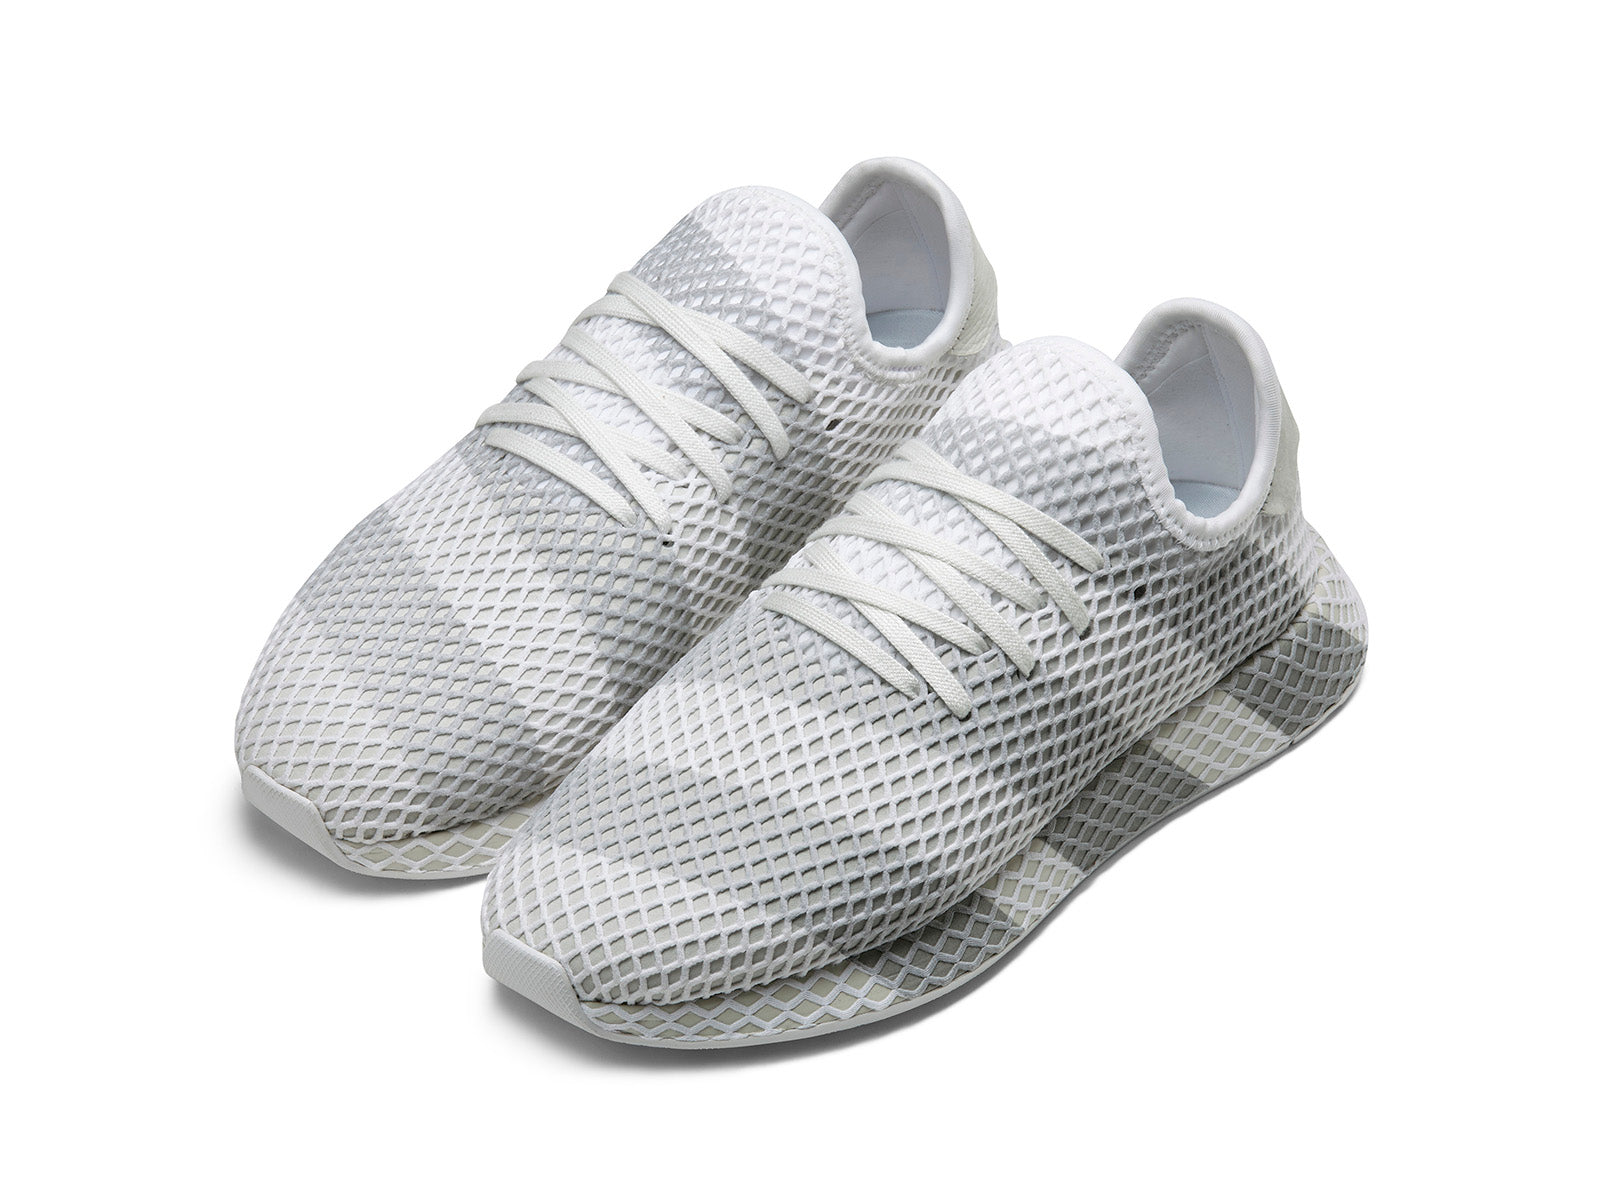 the best attitude 69968 c8554 This month, adidas Originals new Deerupt silhouette receives the adidas  Consortium treatment to create a premium rendition of the deconstructed  running ...